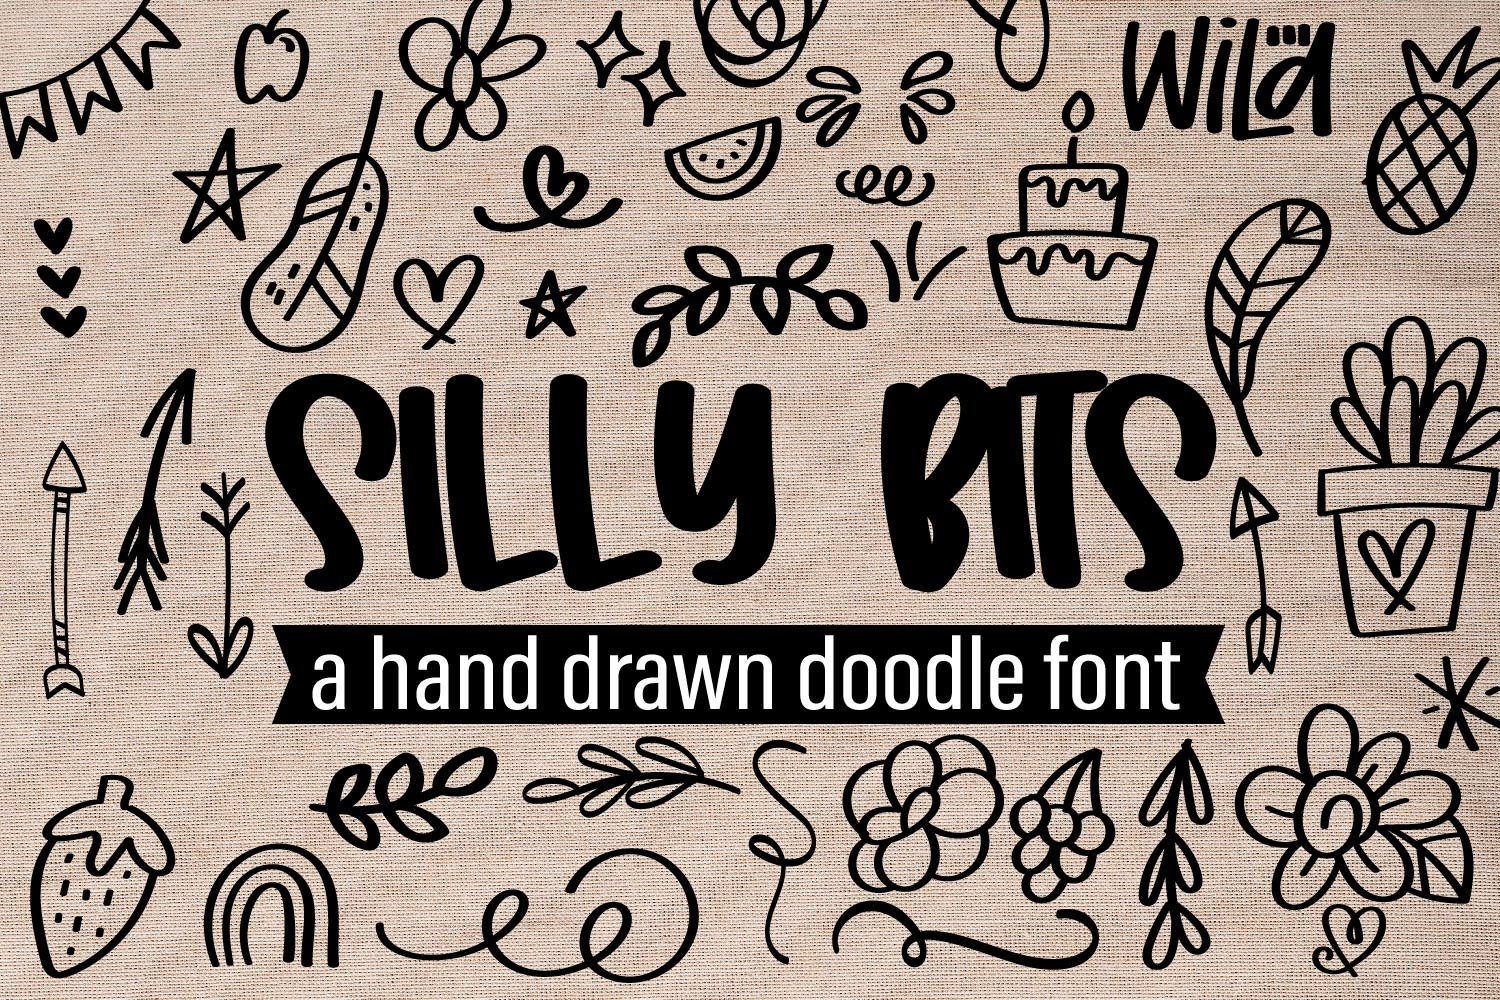 Silly Bits - A Hand Drawn Doodle Font example image 1